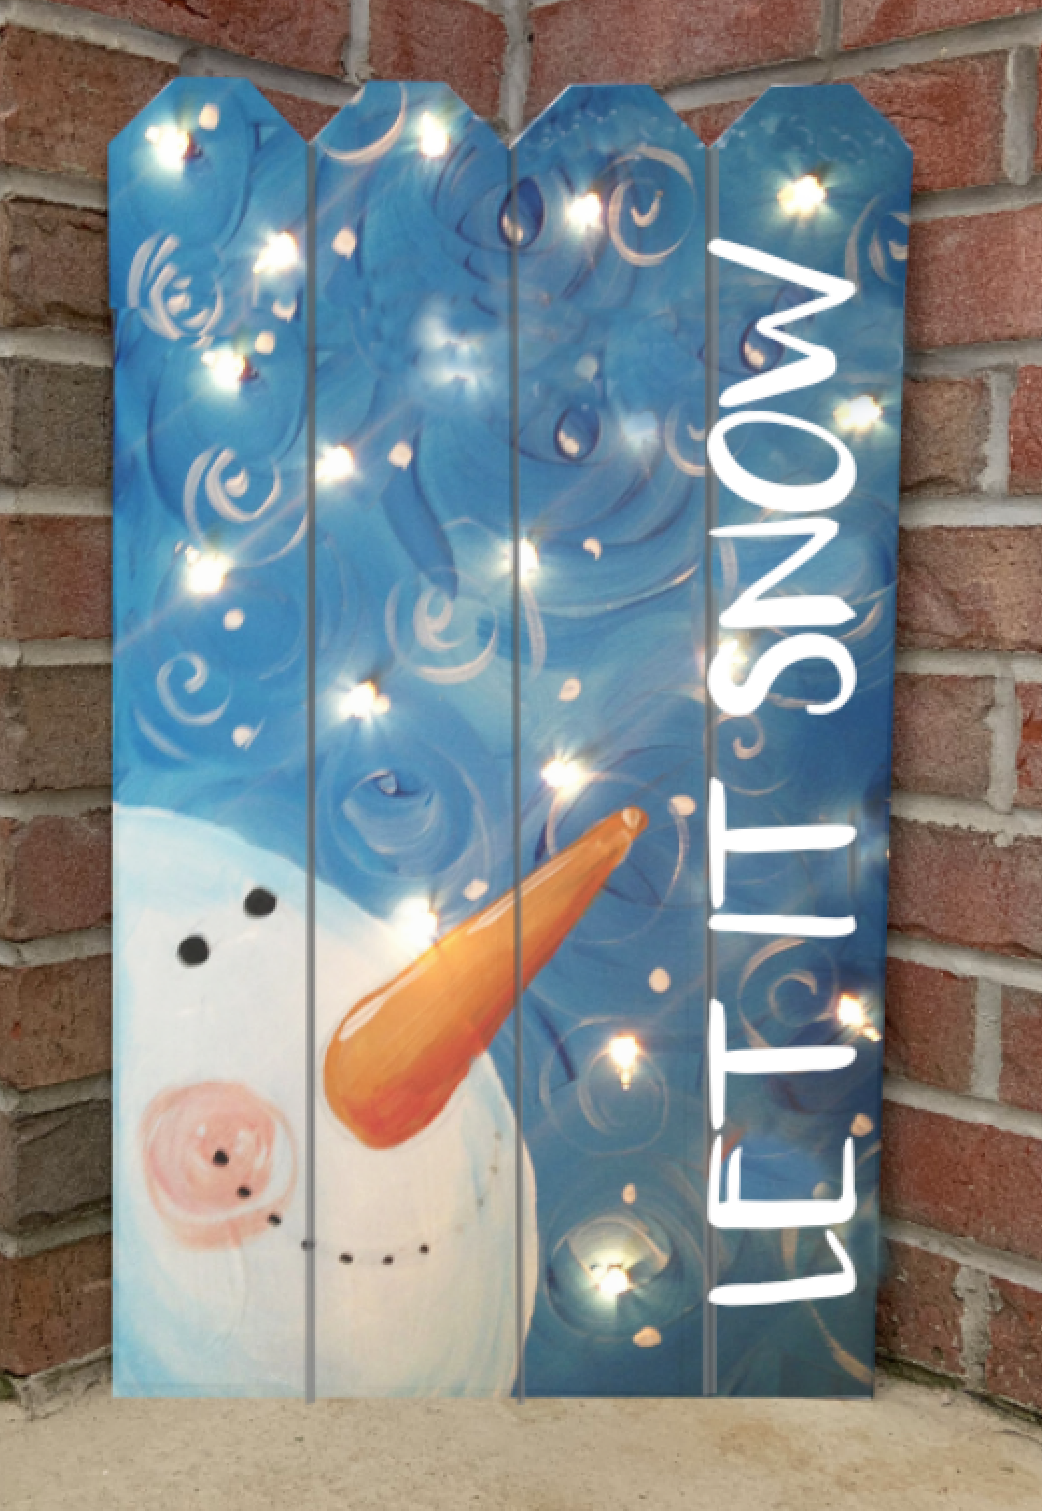 SNOWMAN PICKET FENCE WITH LIGHTS- SEPT 26 - 6:30 PM -  FILIA CELLARS